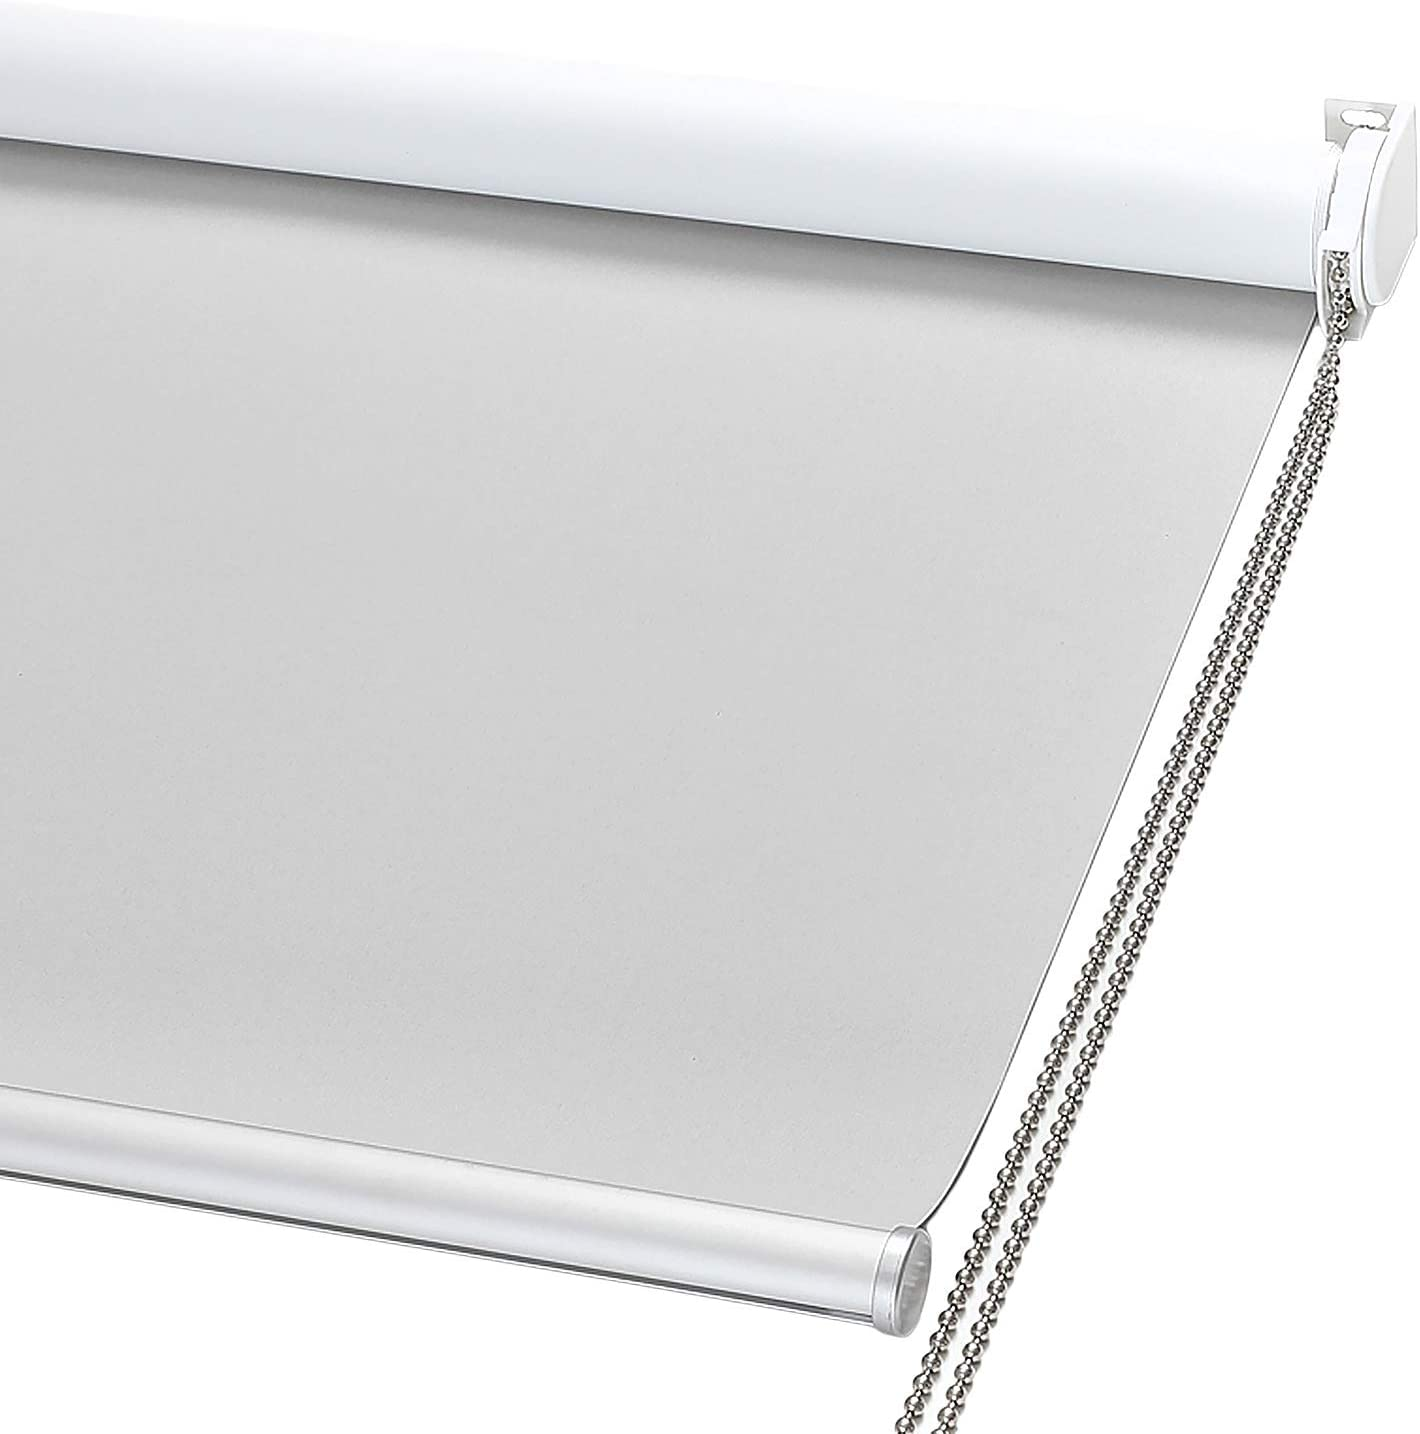 "ChrisDowa 100% Blackout Roller Shade, Window Blind with Thermal Insulated, UV Protection Fabric. Total Blackout Roller Blind for Office and Home. Easy to Install (28"" W x 72"" H, Light Grey)"